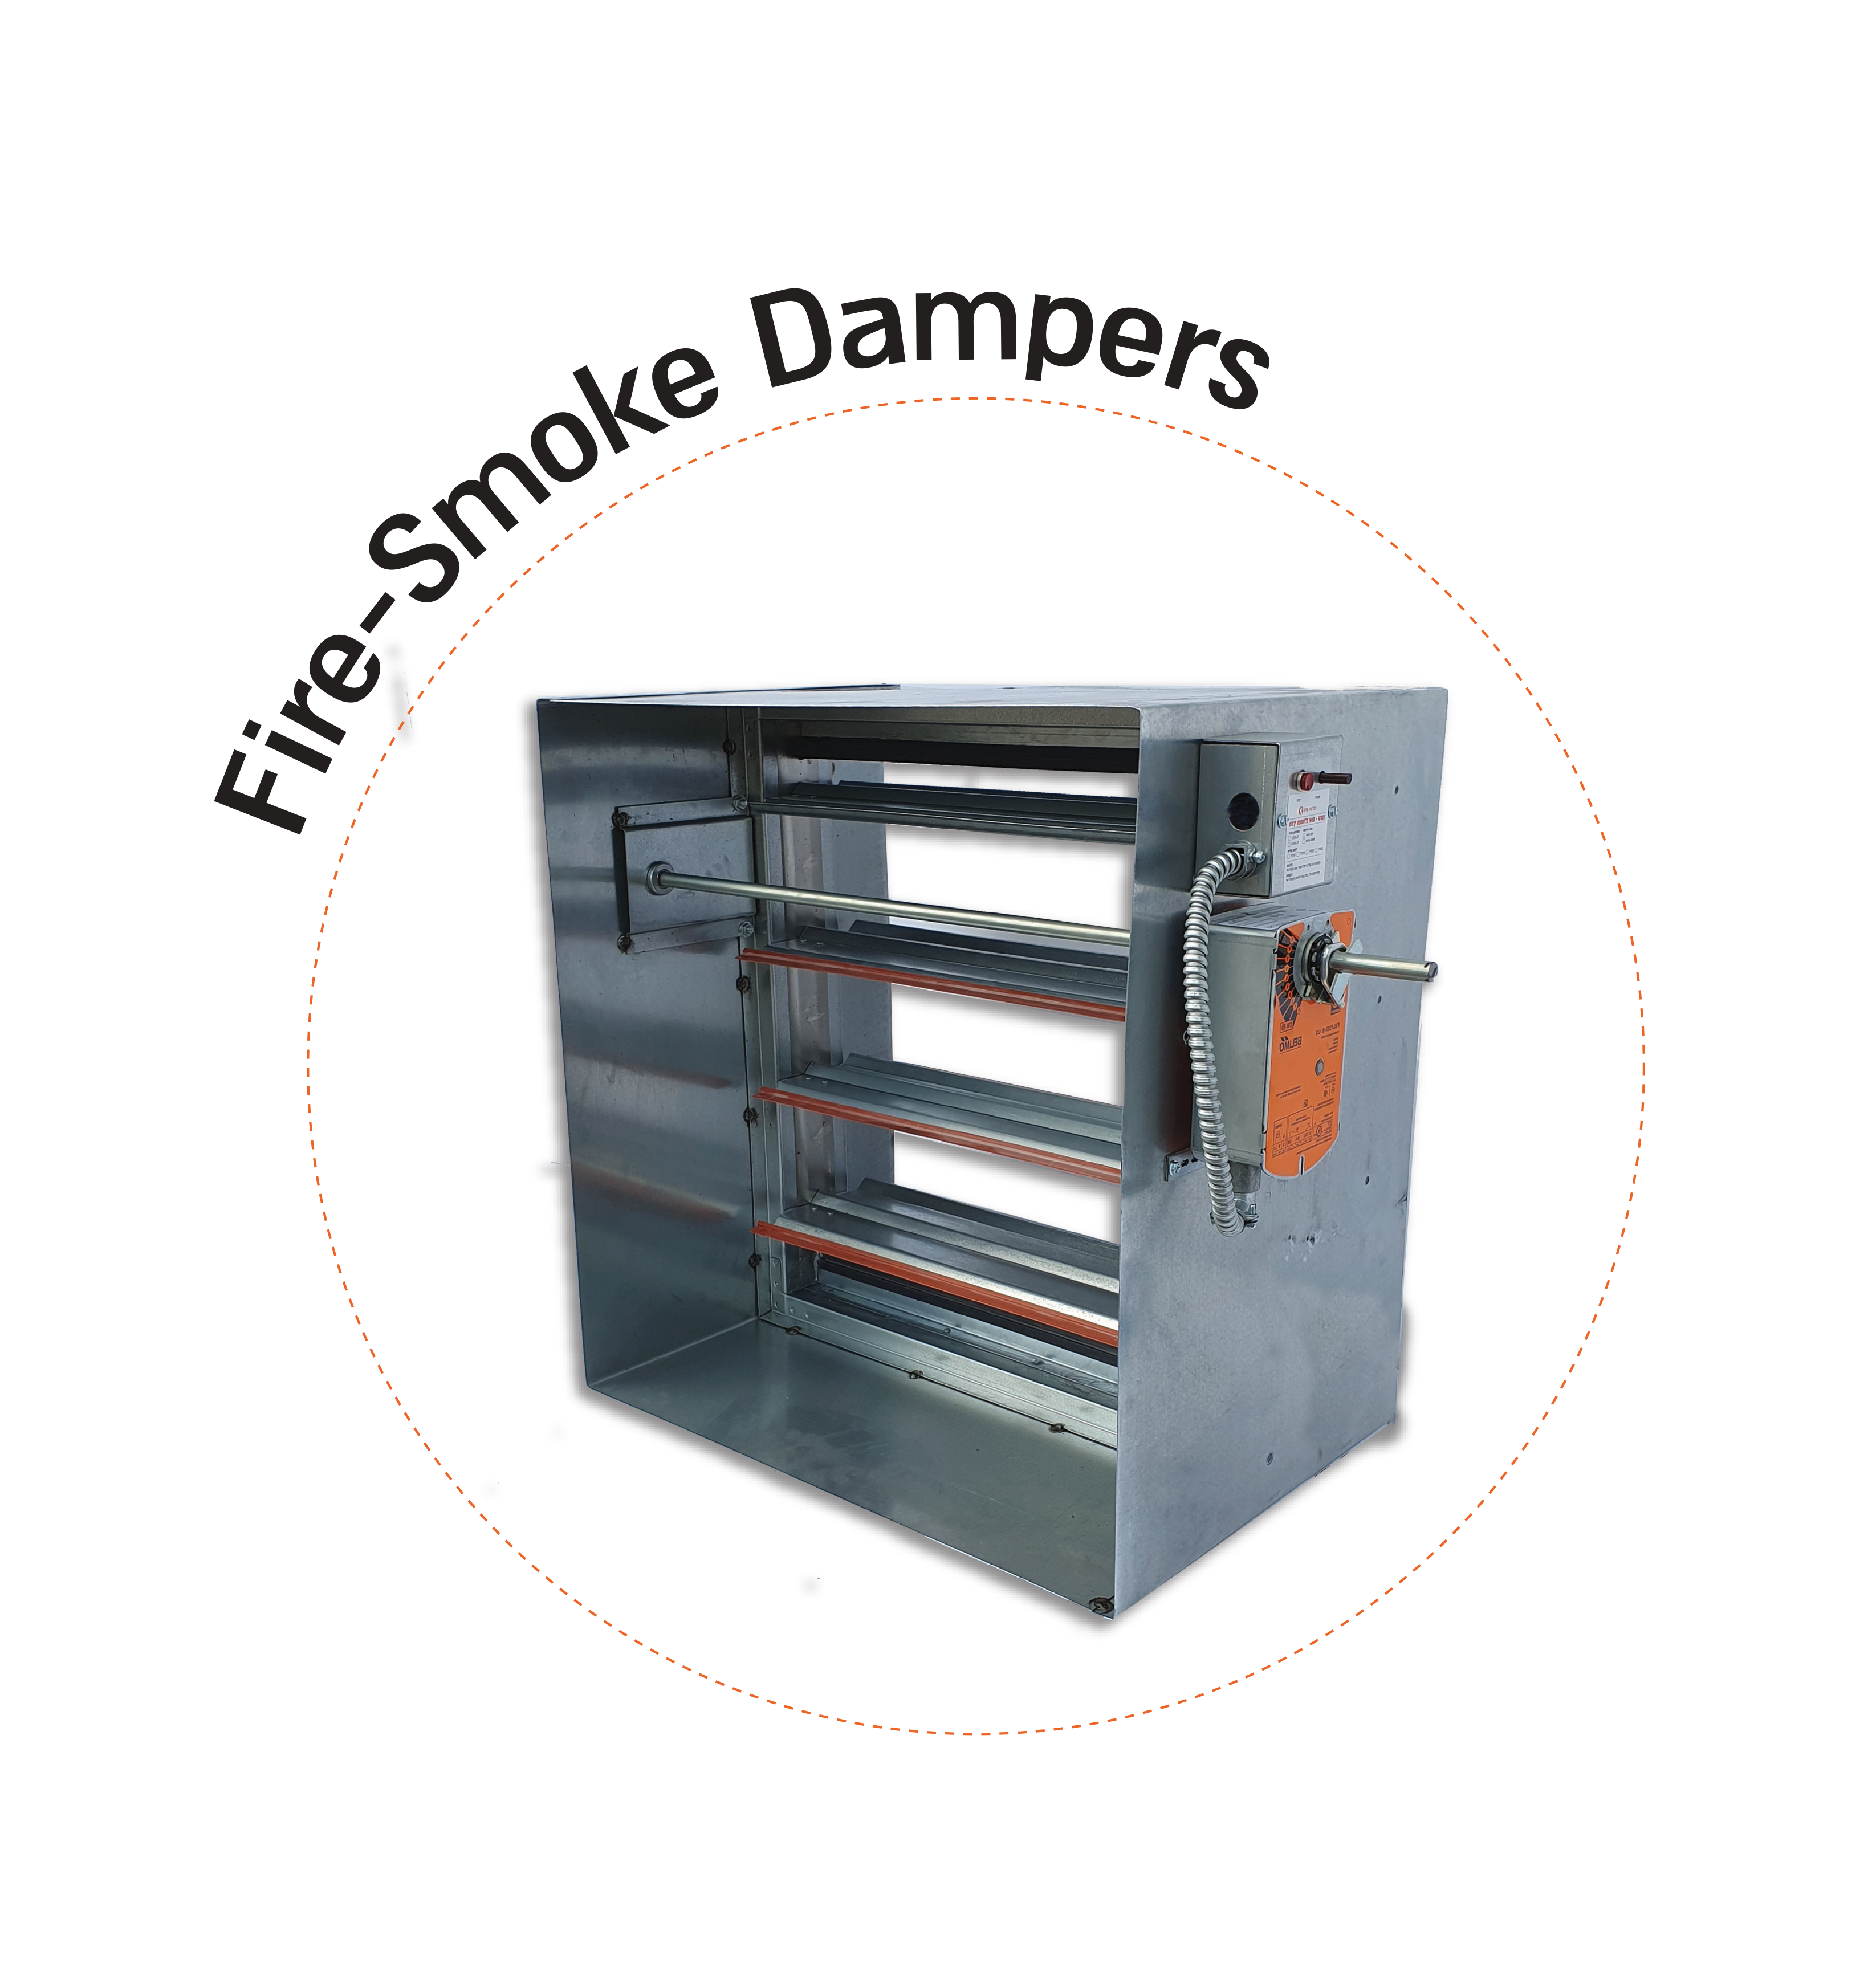 EFS fire and smoke combination damper used in HVAC ducts, certified by UL to UL 555 and UL 555S